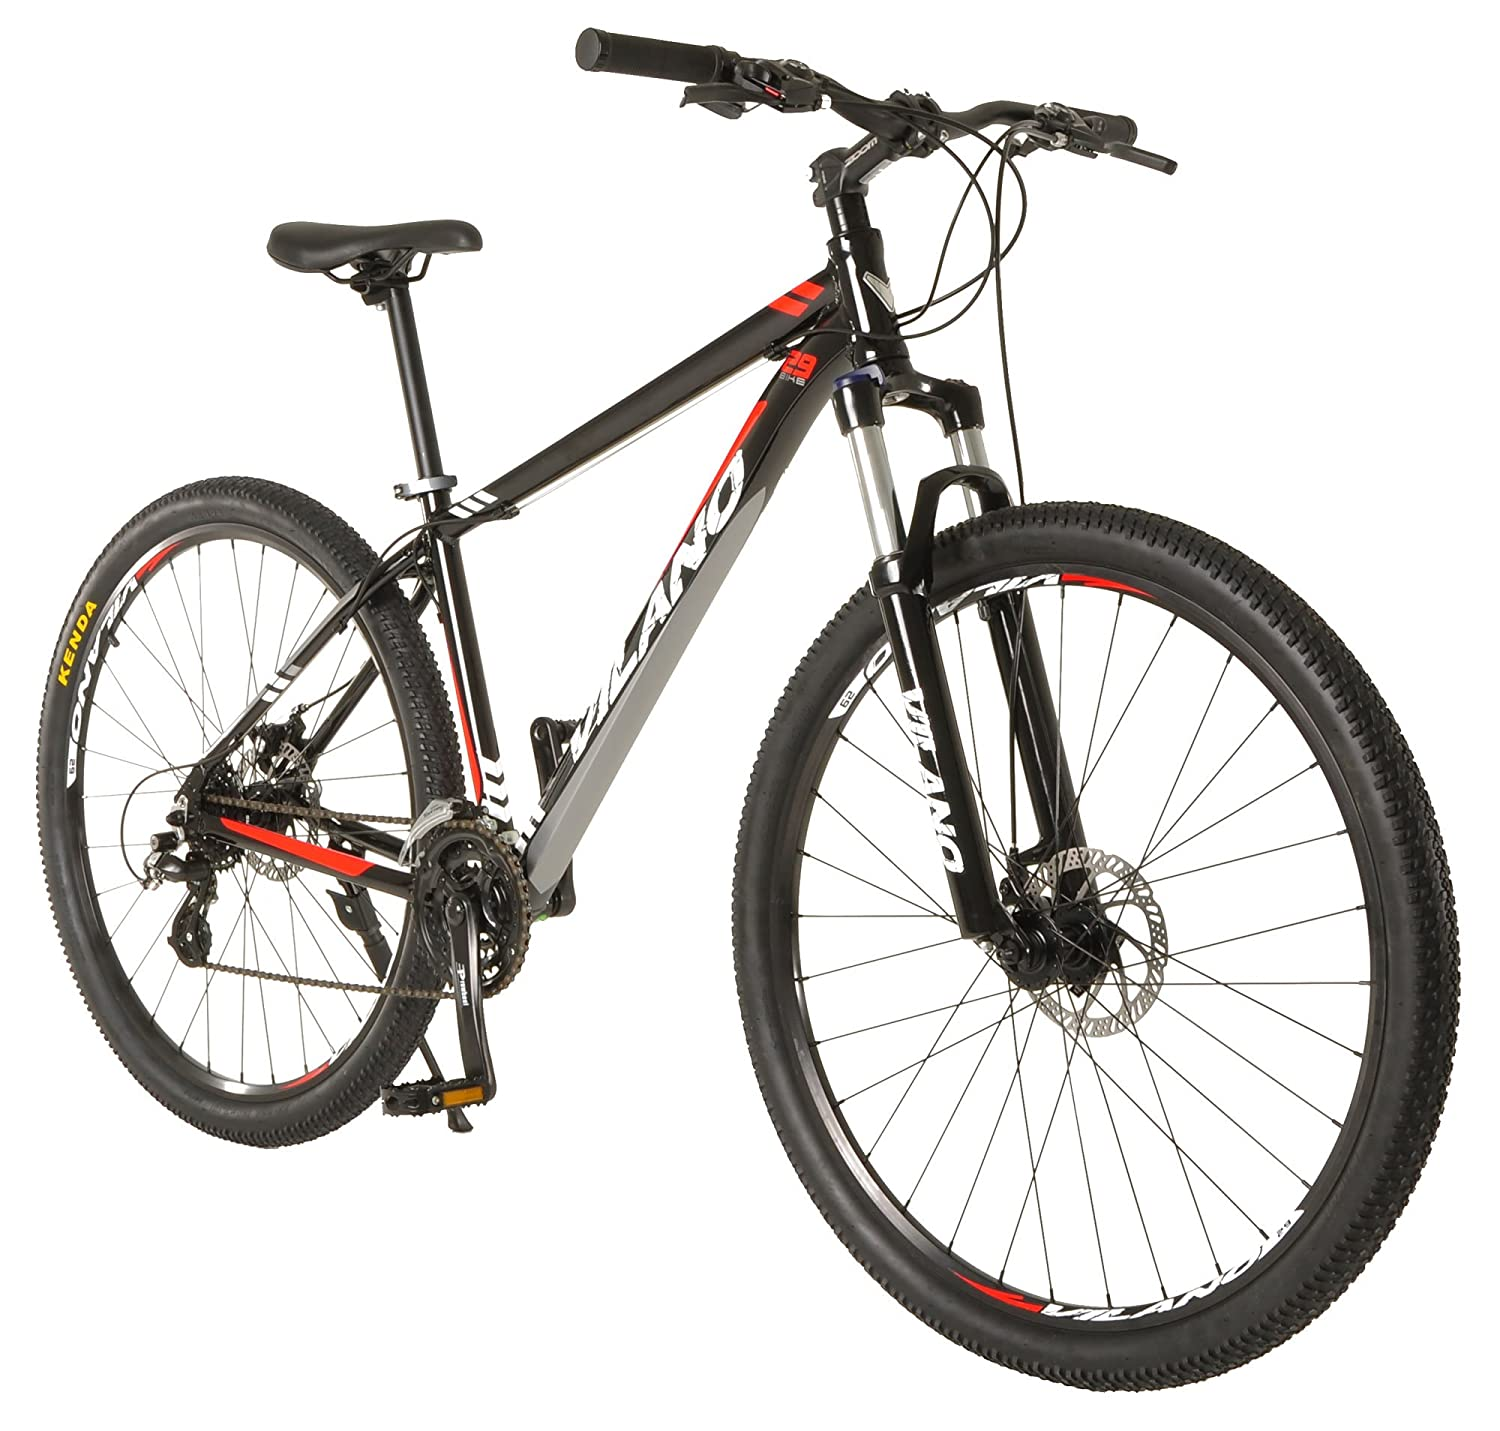 image of black and red vilano mtb